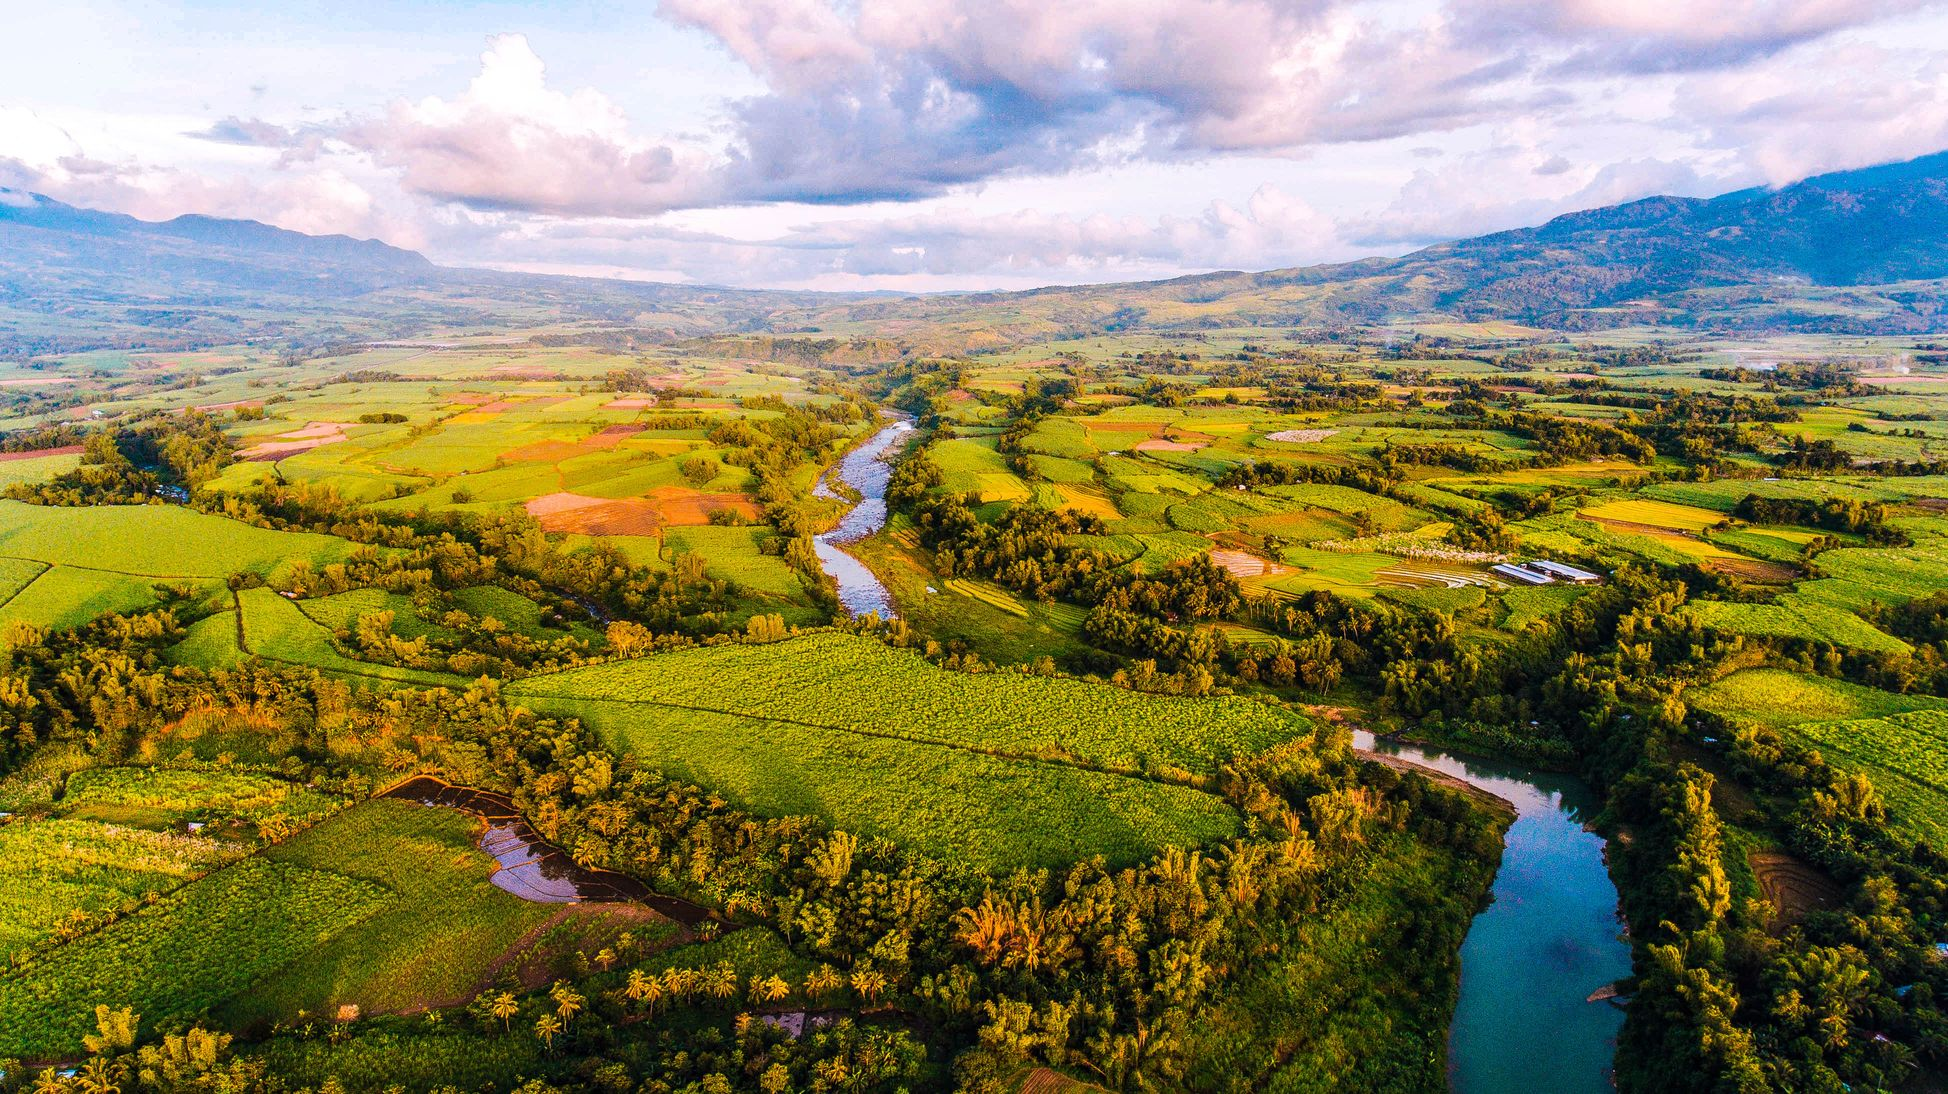 Aerial view of a river meandering through vast and verdant farms and fields with mountains looming in the distance